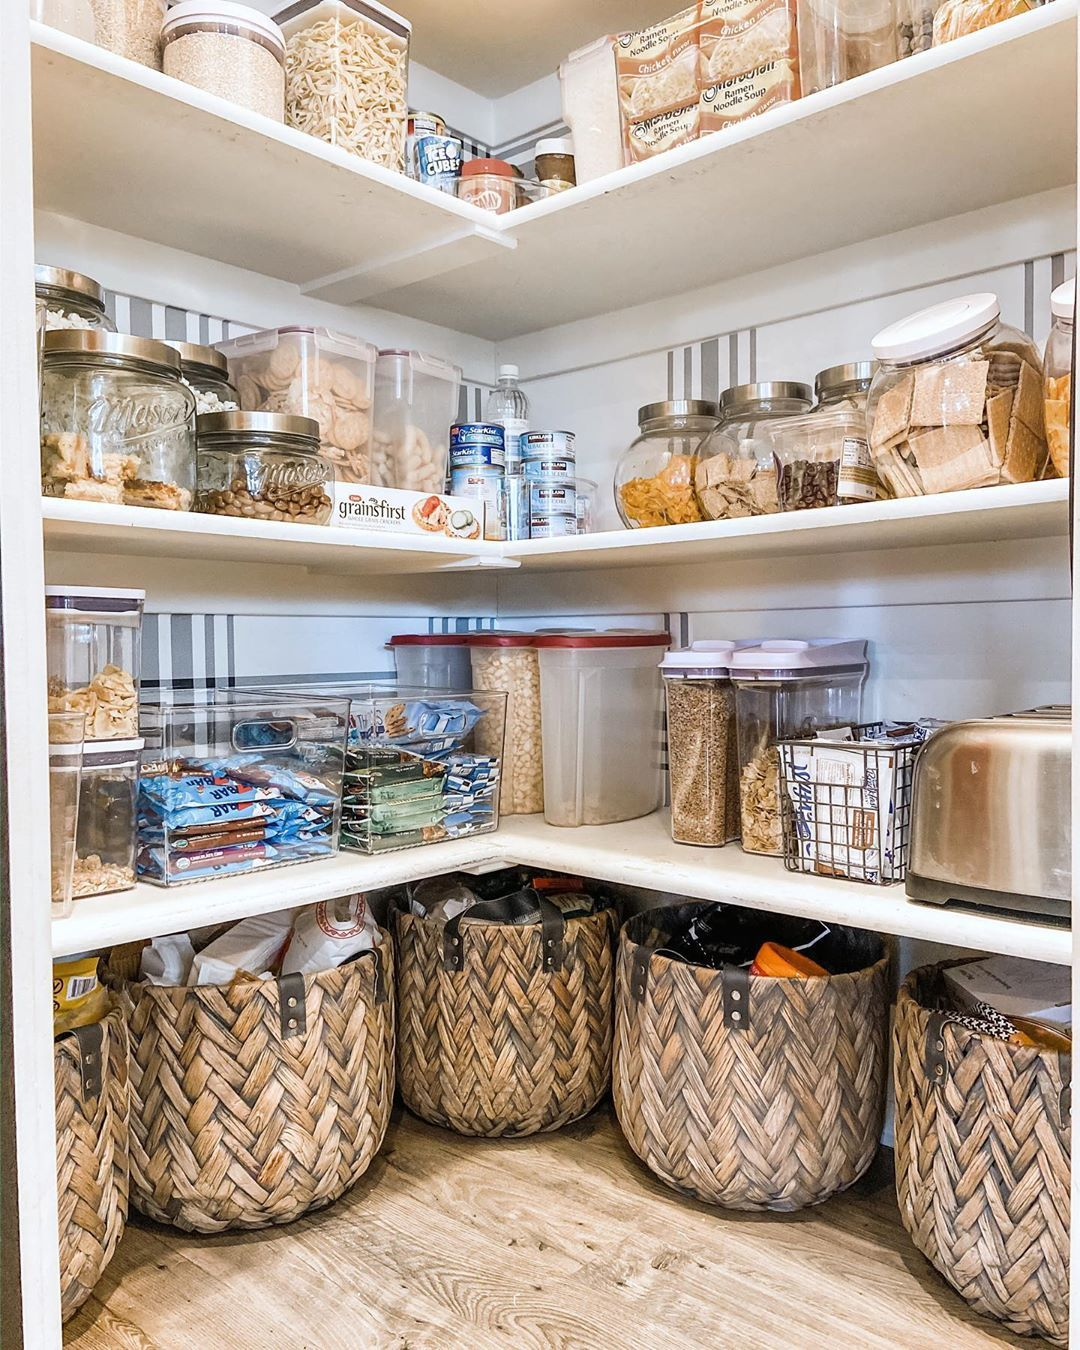 Bed Bath Beyond On Instagram This Pantry Is Goals Hit The